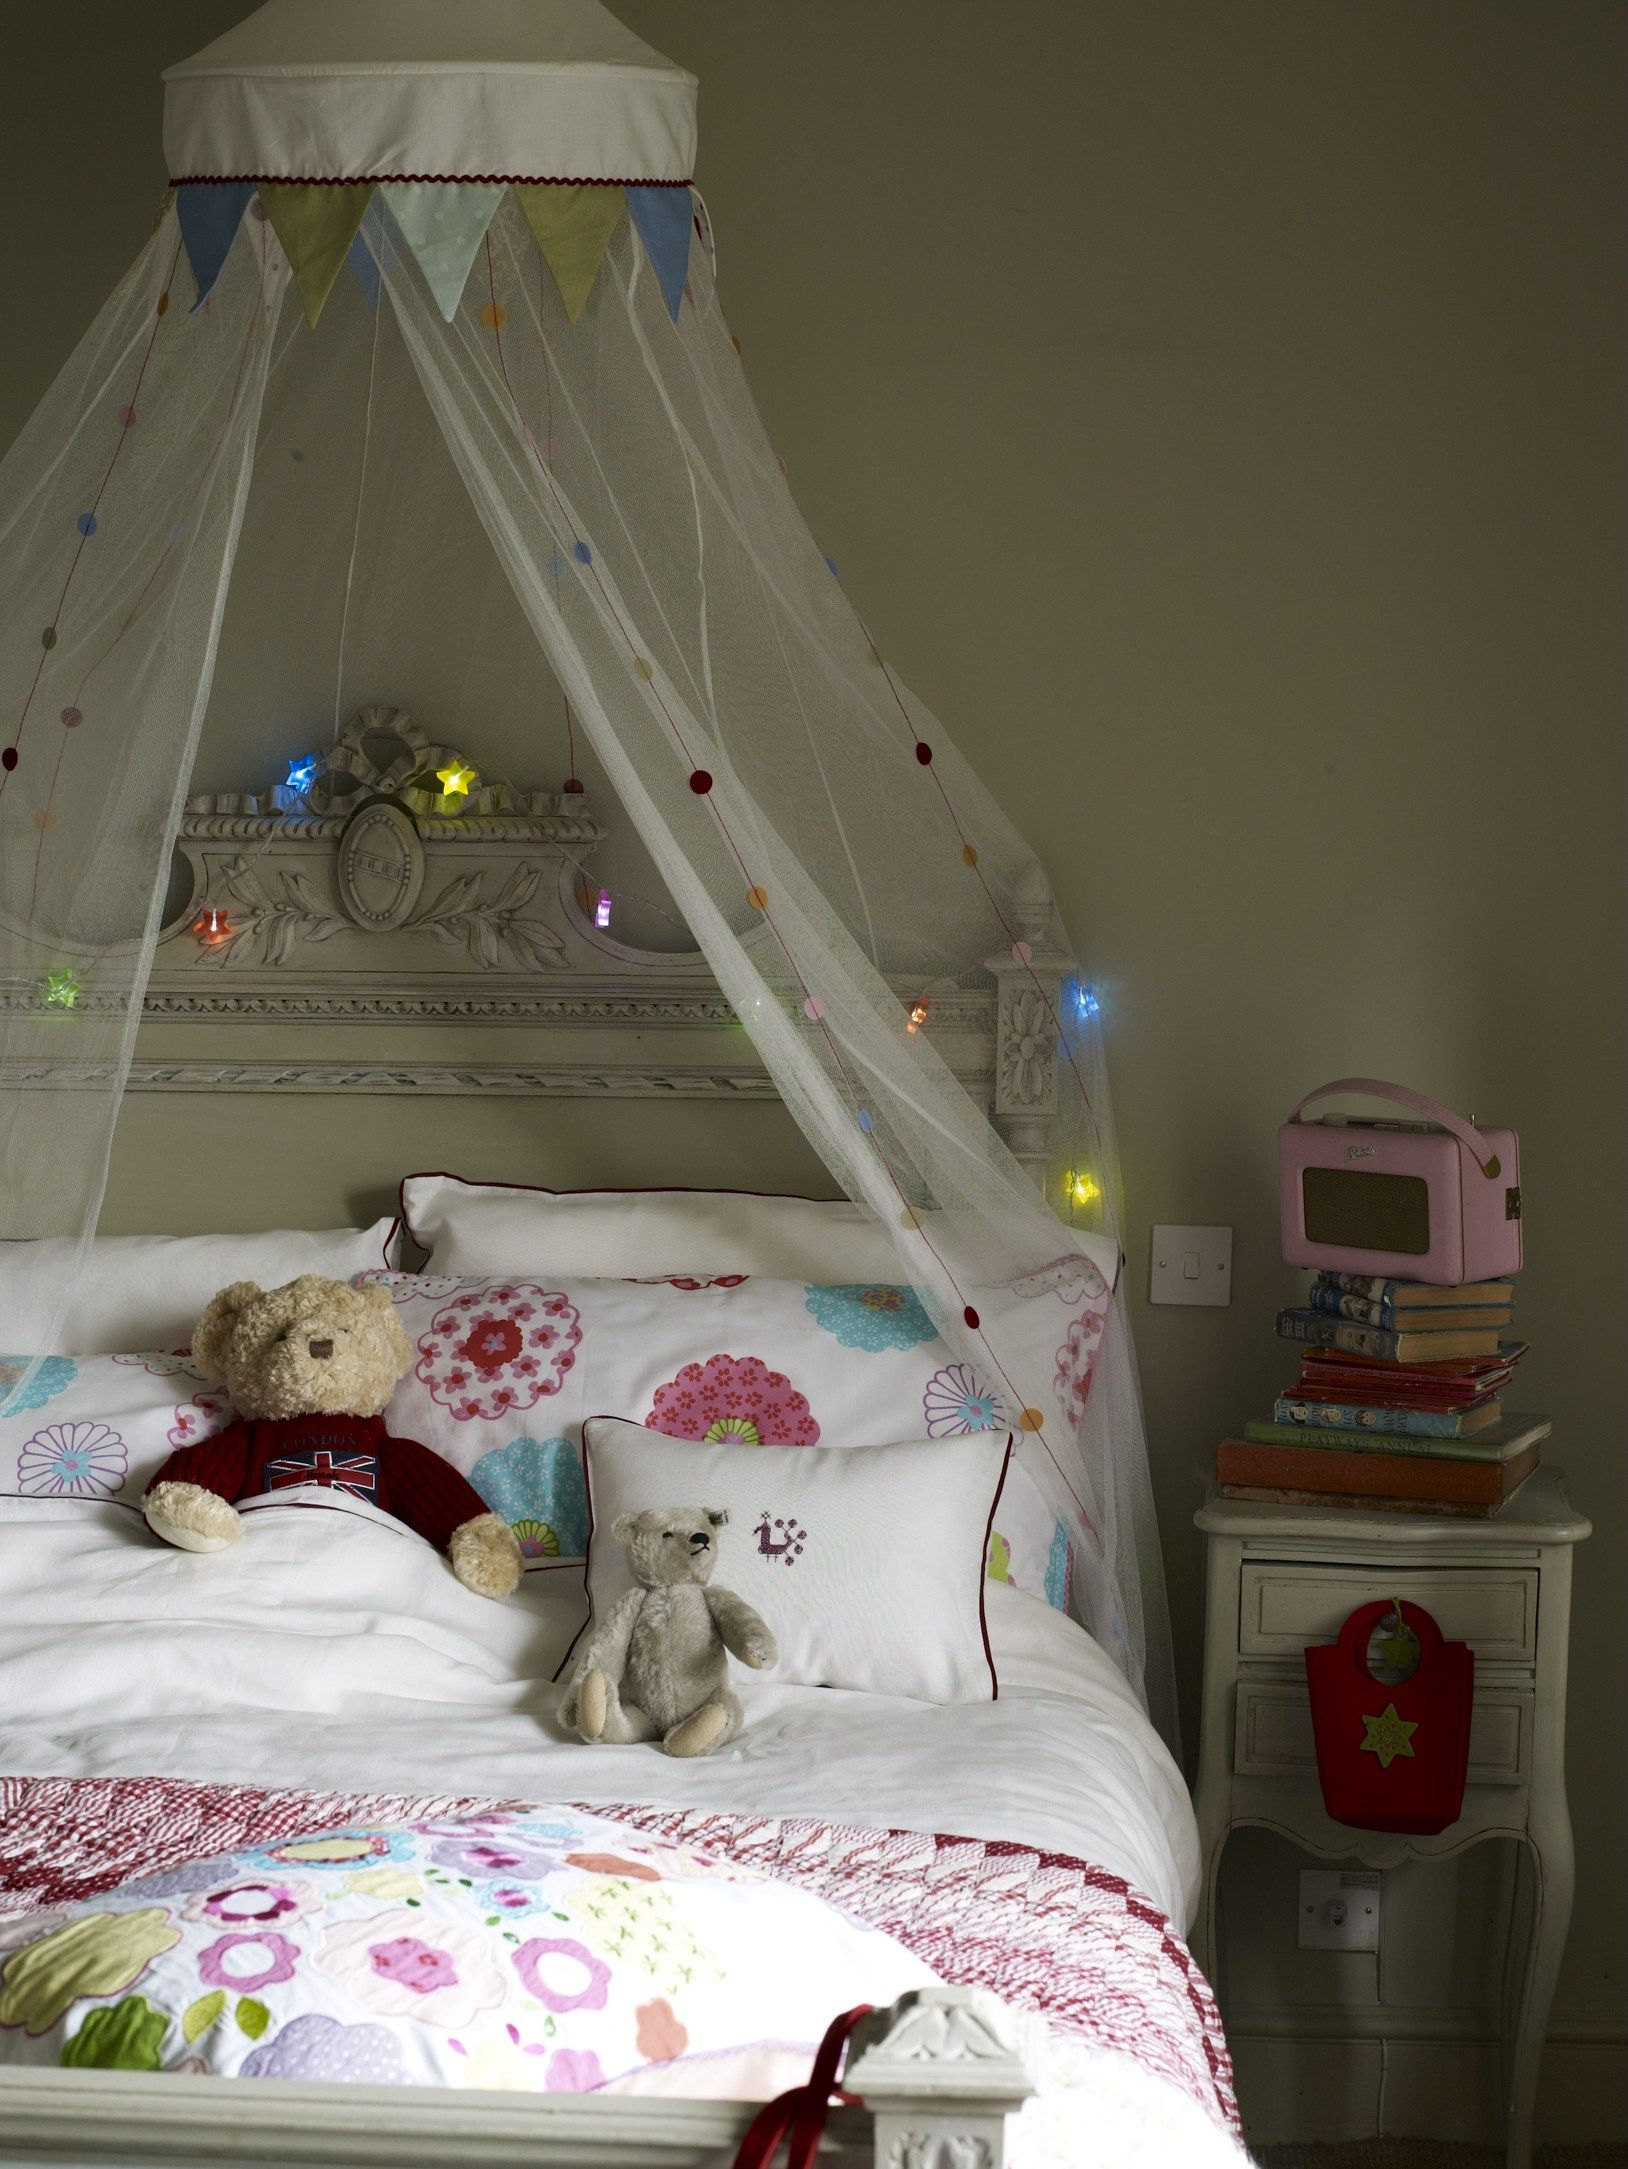 child's bedroom: tulle canopy with strings of metallic stairs